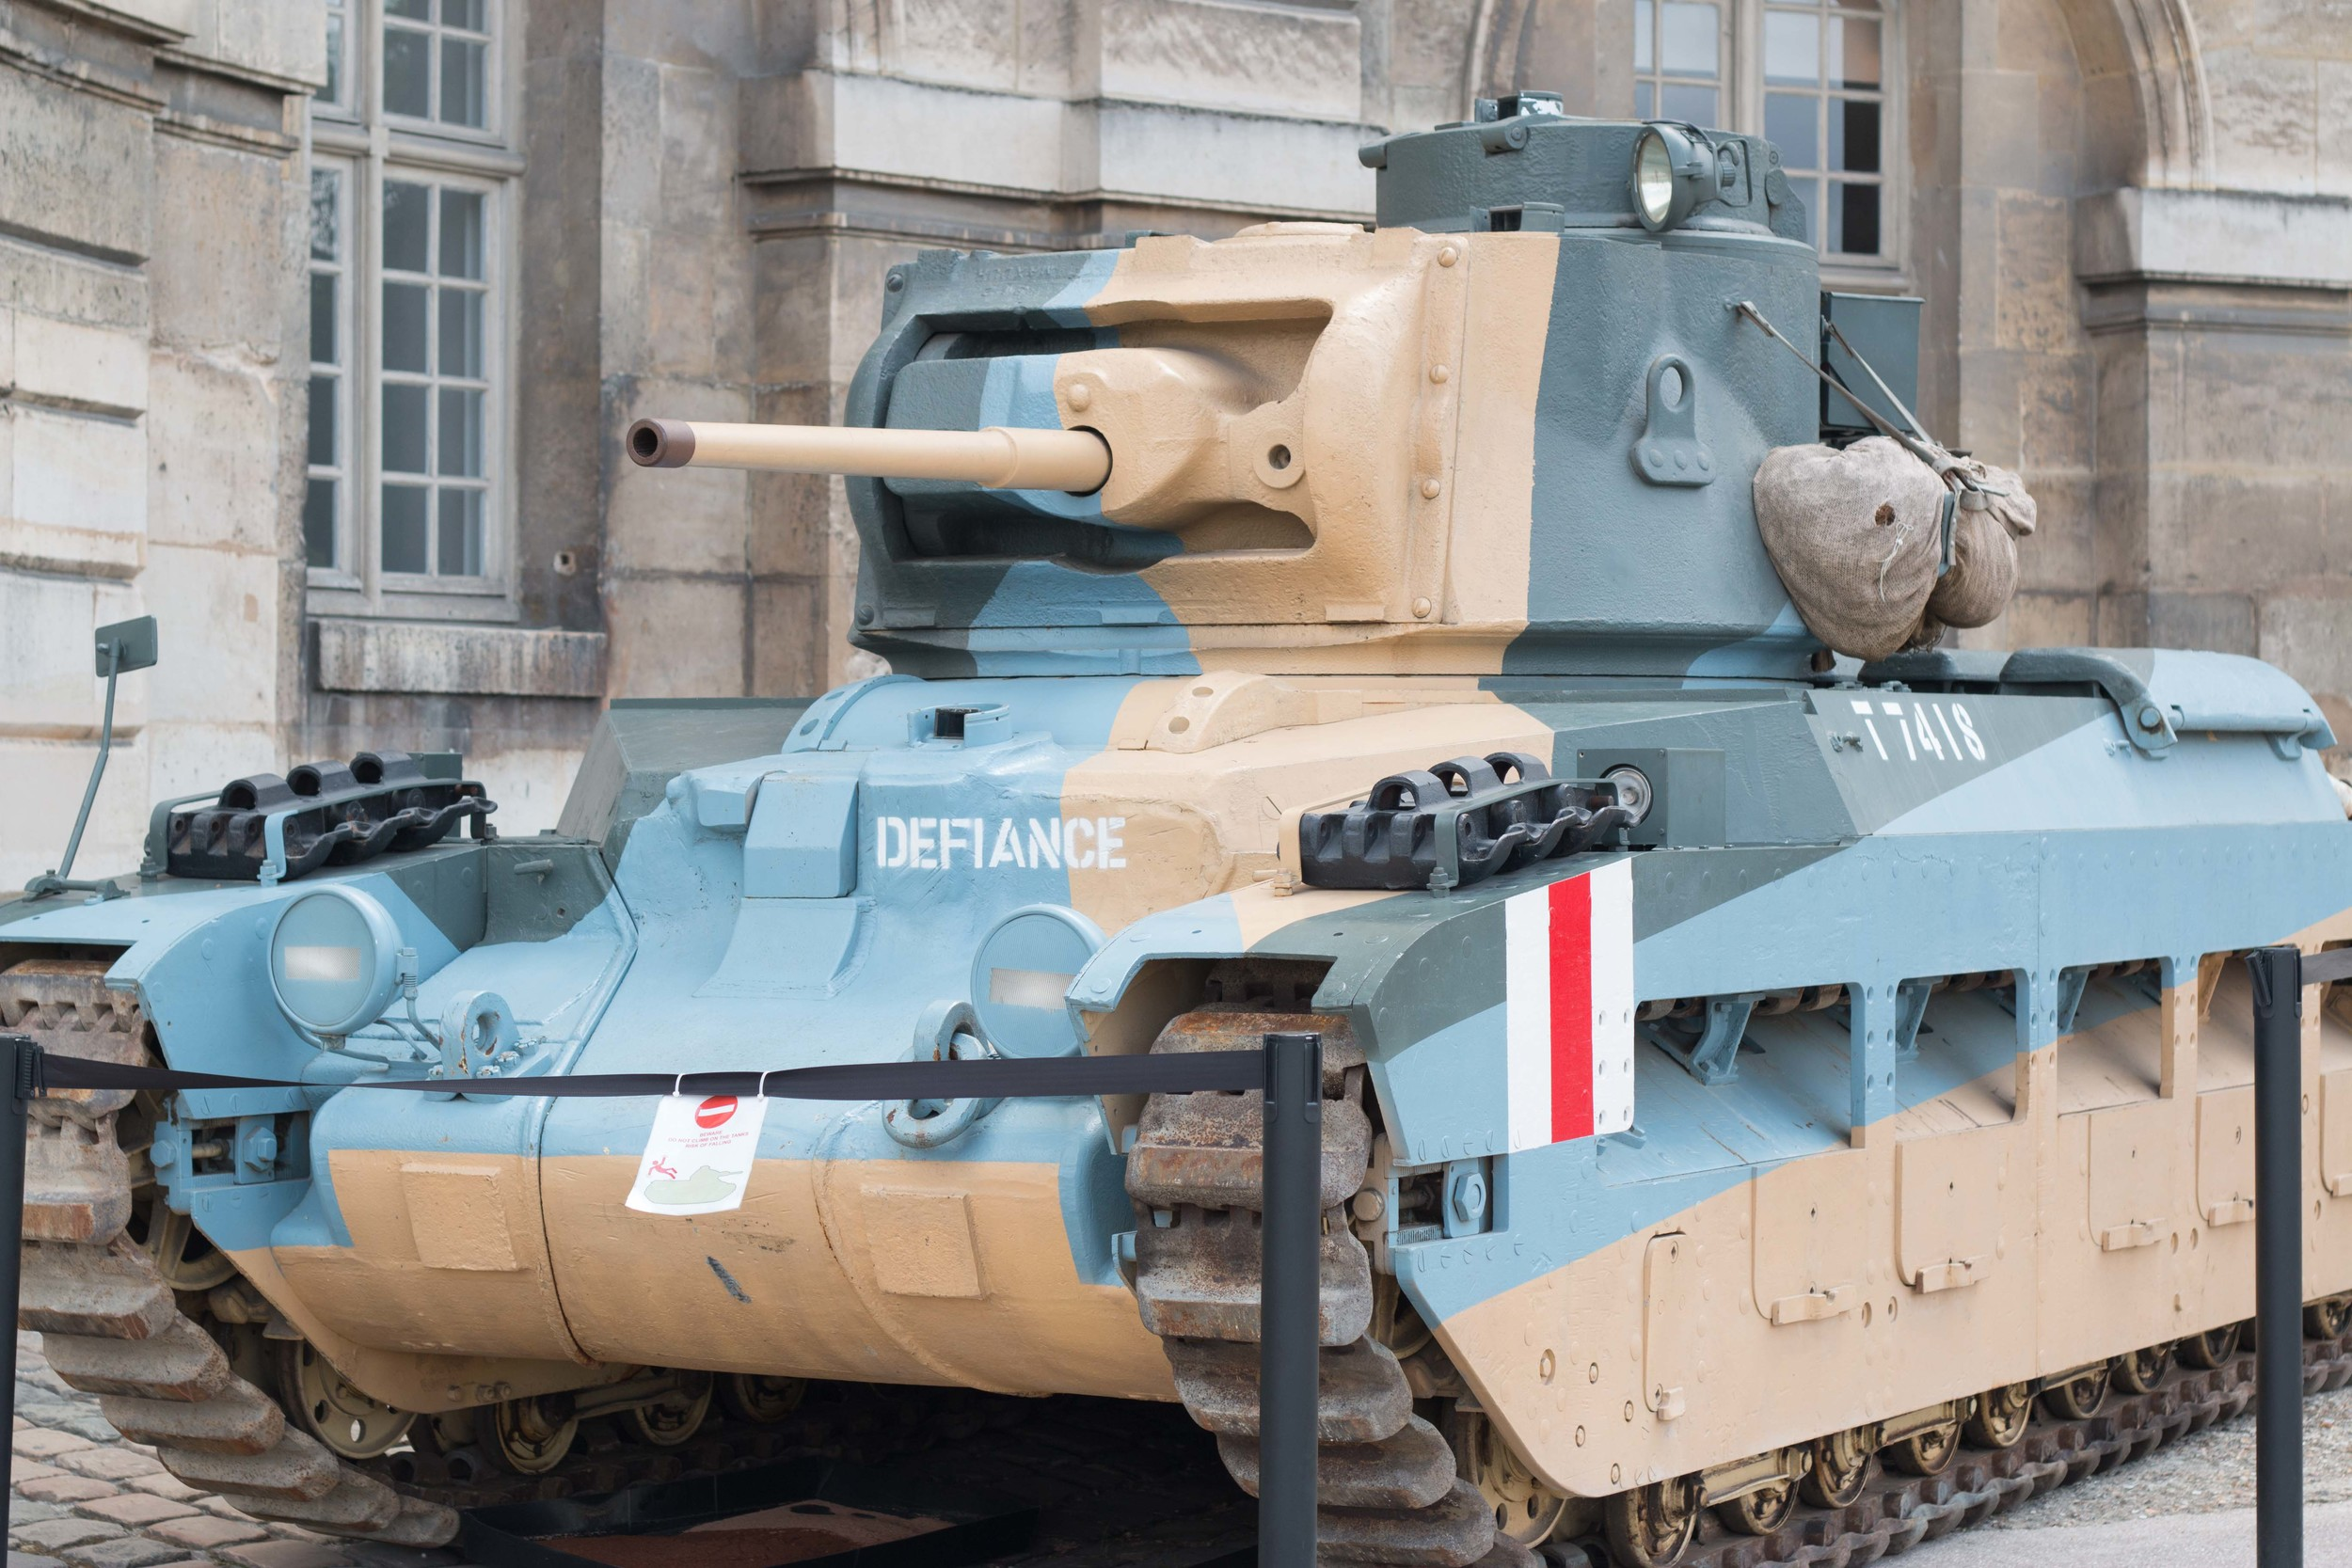 French Tank from World War II